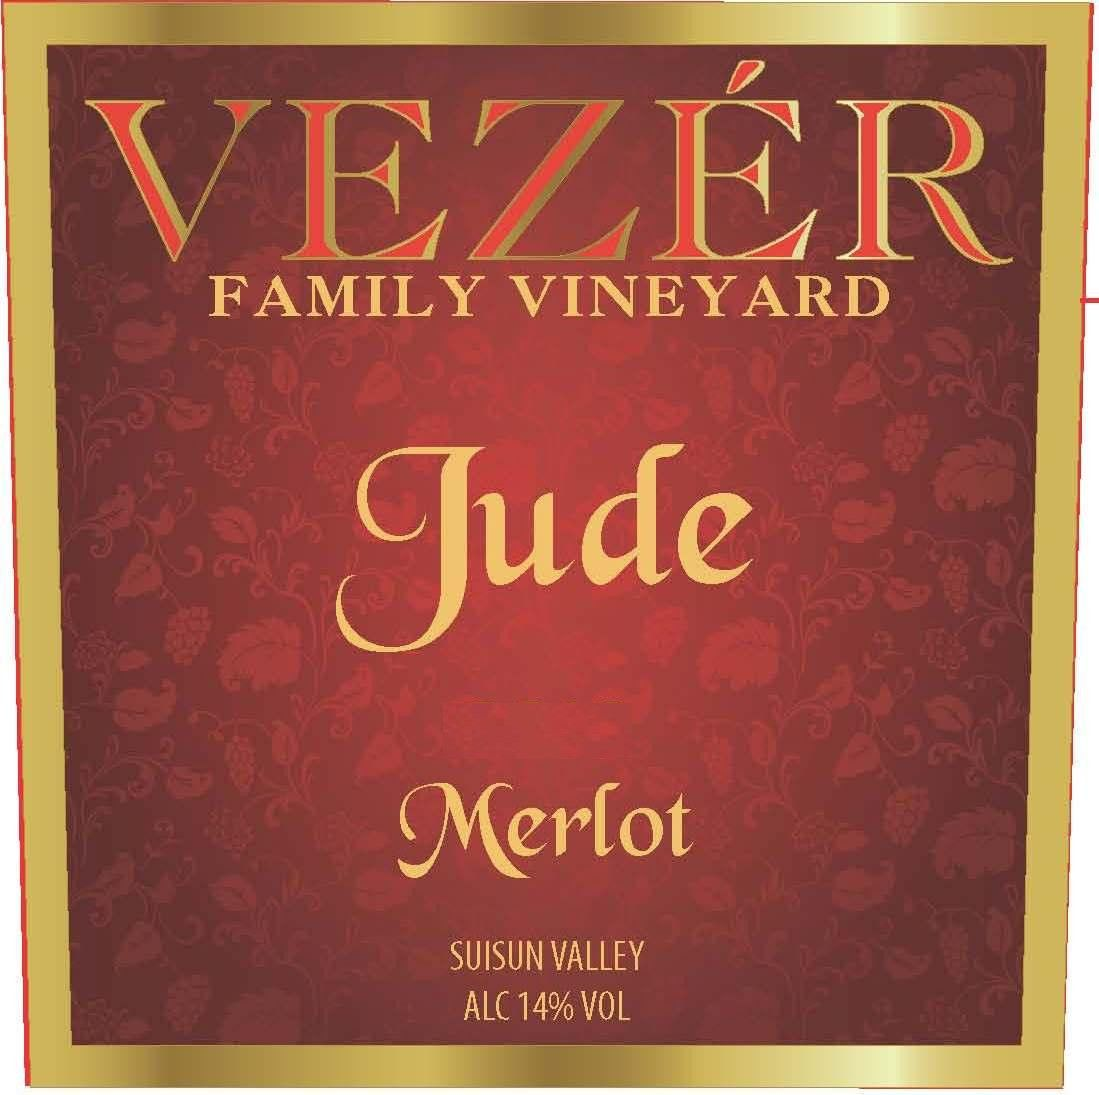 Vezer Family Vineyards Jude Merlot 2012 Front Label